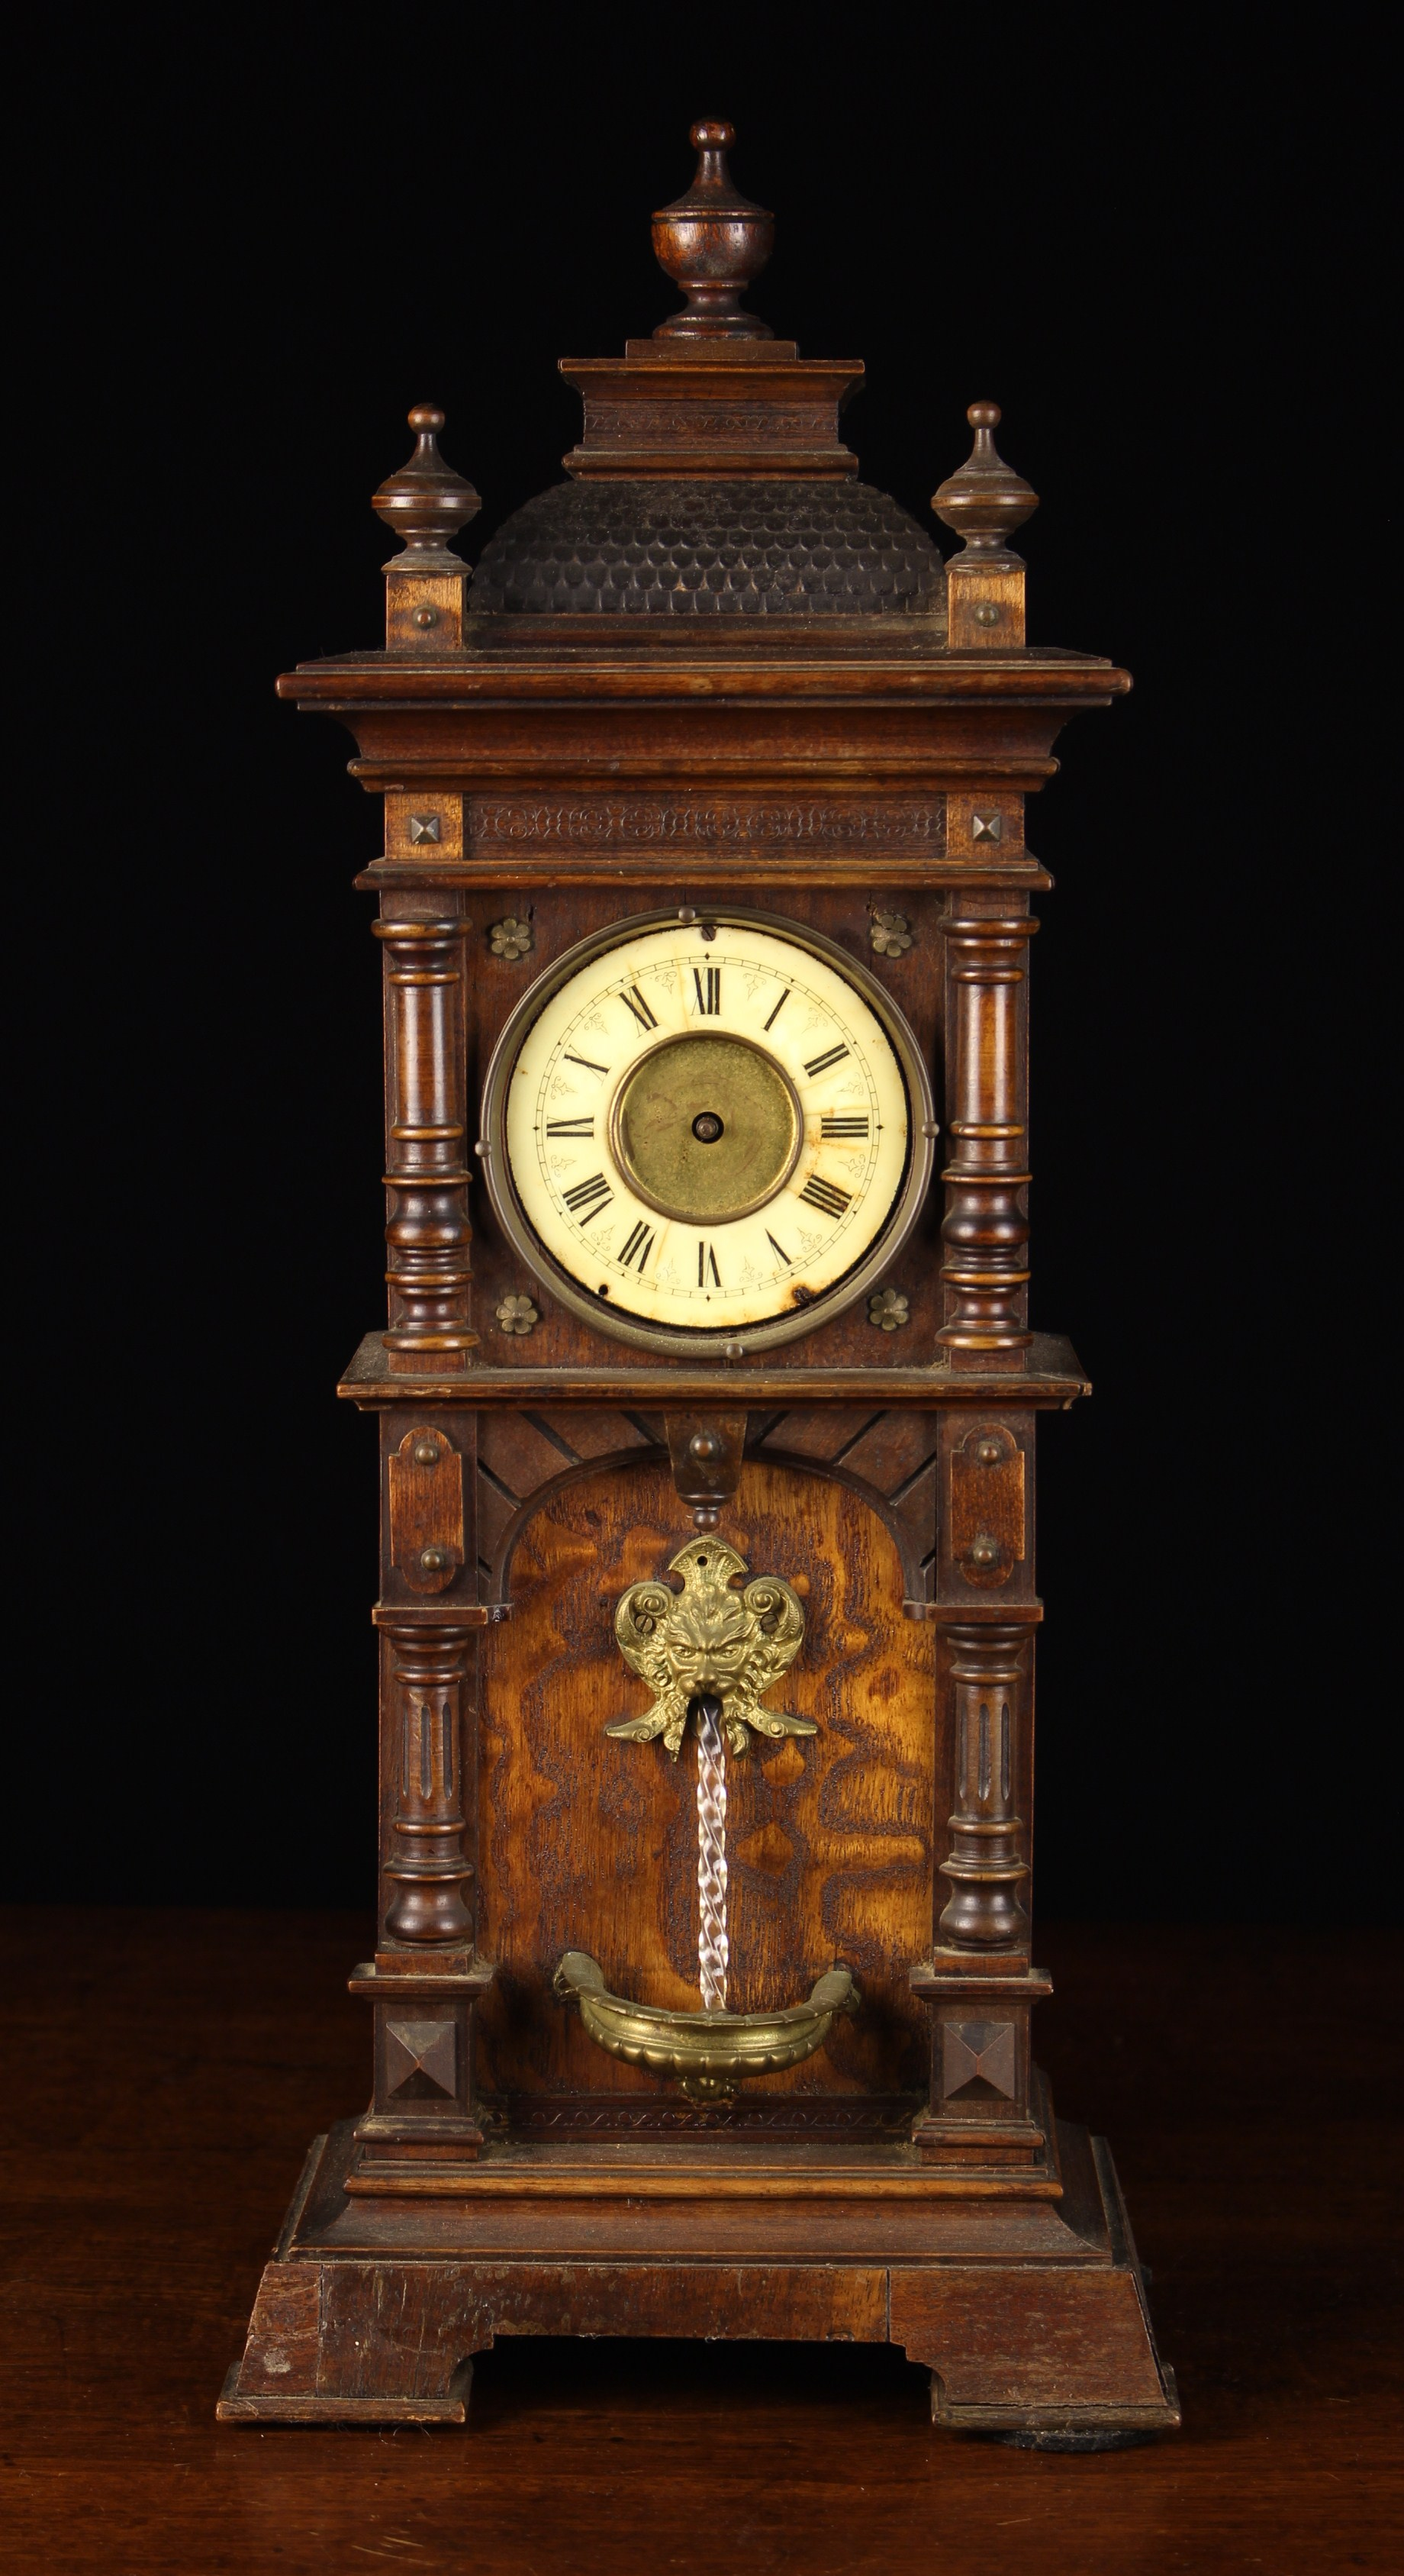 A Late 19th Century 'Water Fountain' Clock (A/F) modeled as a grandfather clock with a gilt metal